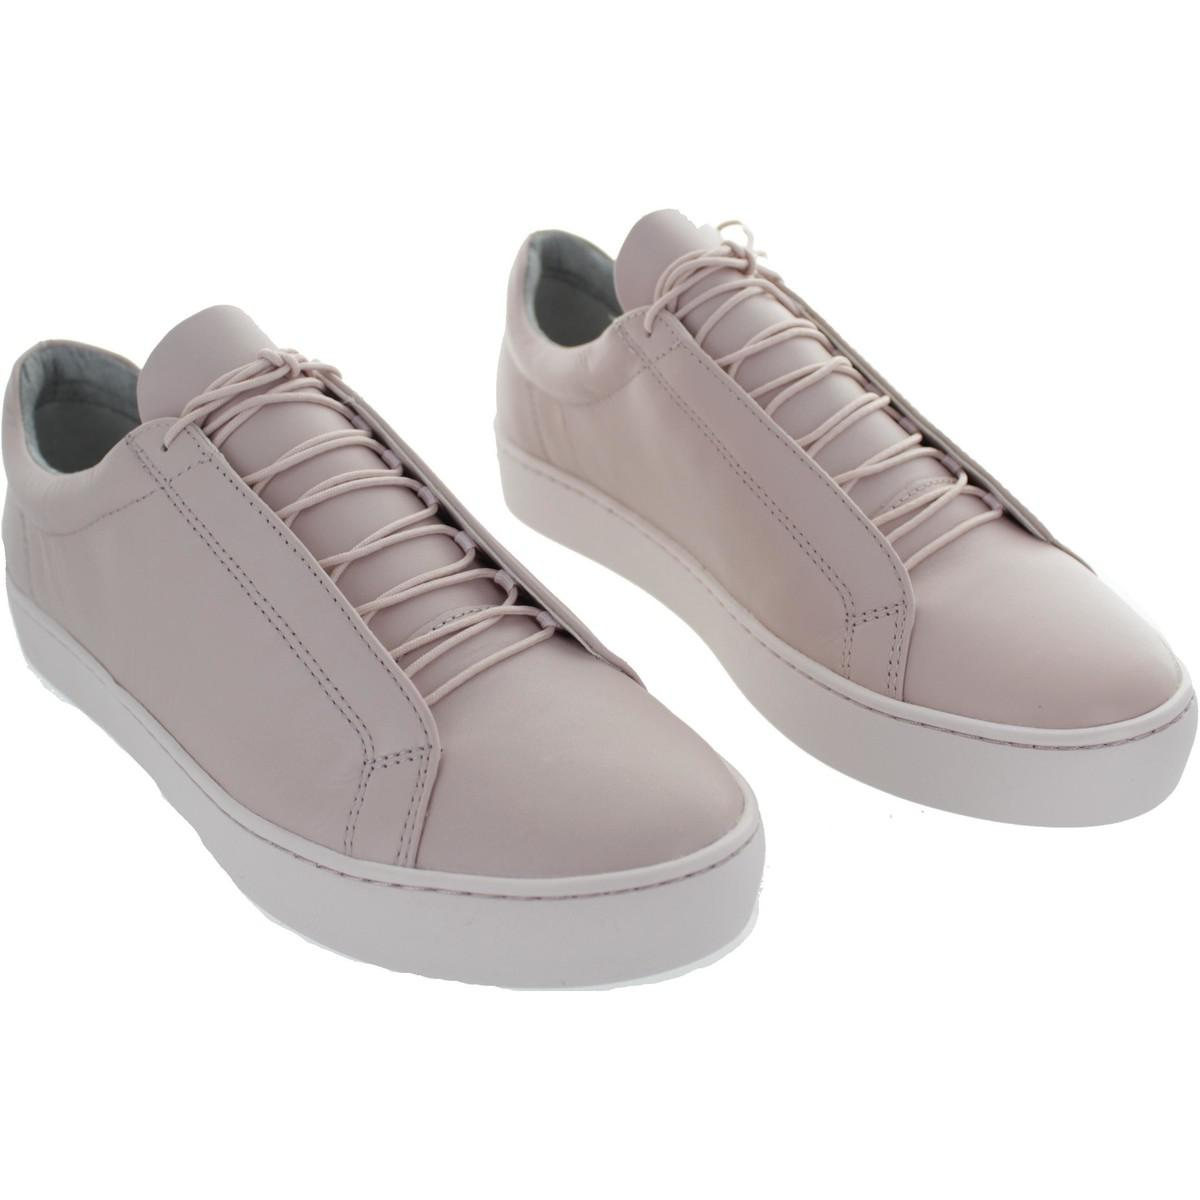 4ddc1e3ce782 Vagabond Zoe Women s Shoes (trainers) In Pink in Pink - Lyst